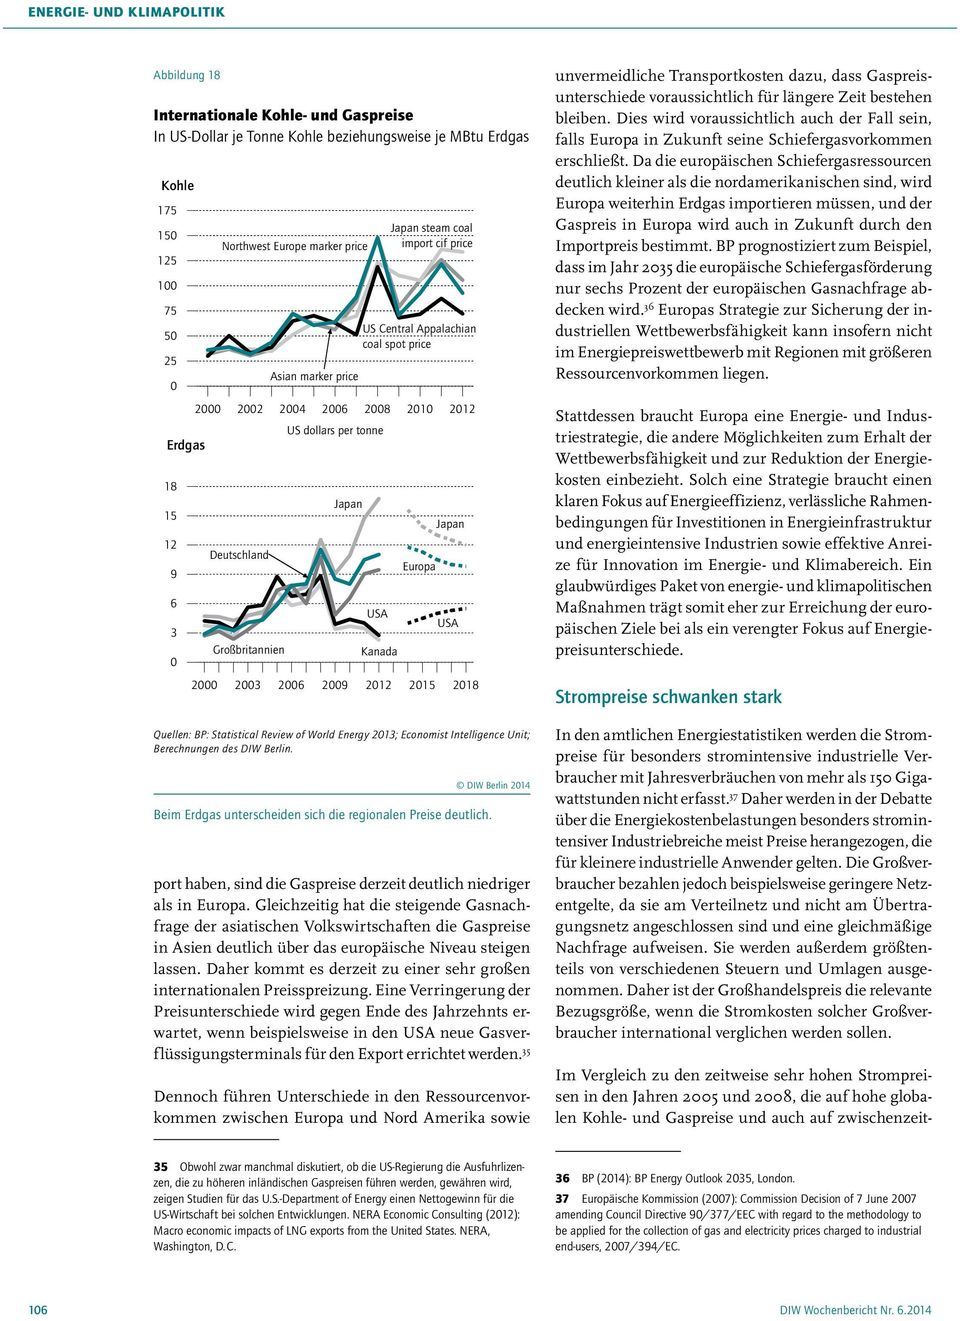 2000 2003 2006 2009 2012 2015 2018 Quellen: BP: Statistical Review of World Energy 2013; Economist Intelligence Unit; Berechnungen des DIW Berlin.